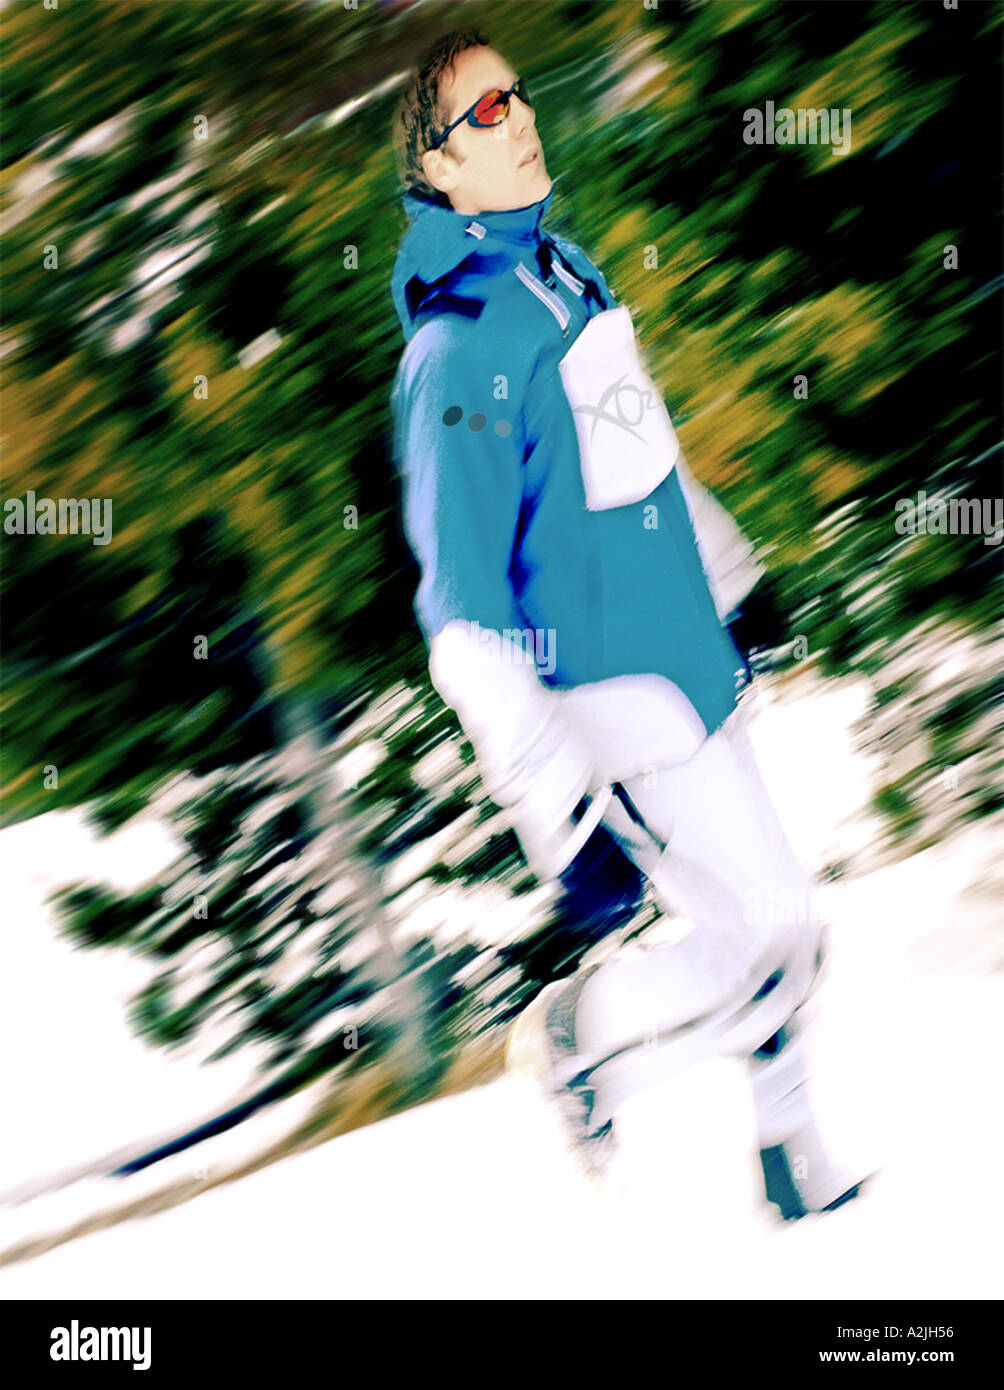 Editorial Photography of a male/female age 25 wearing ski/snowboarding clothing. - Stock Image